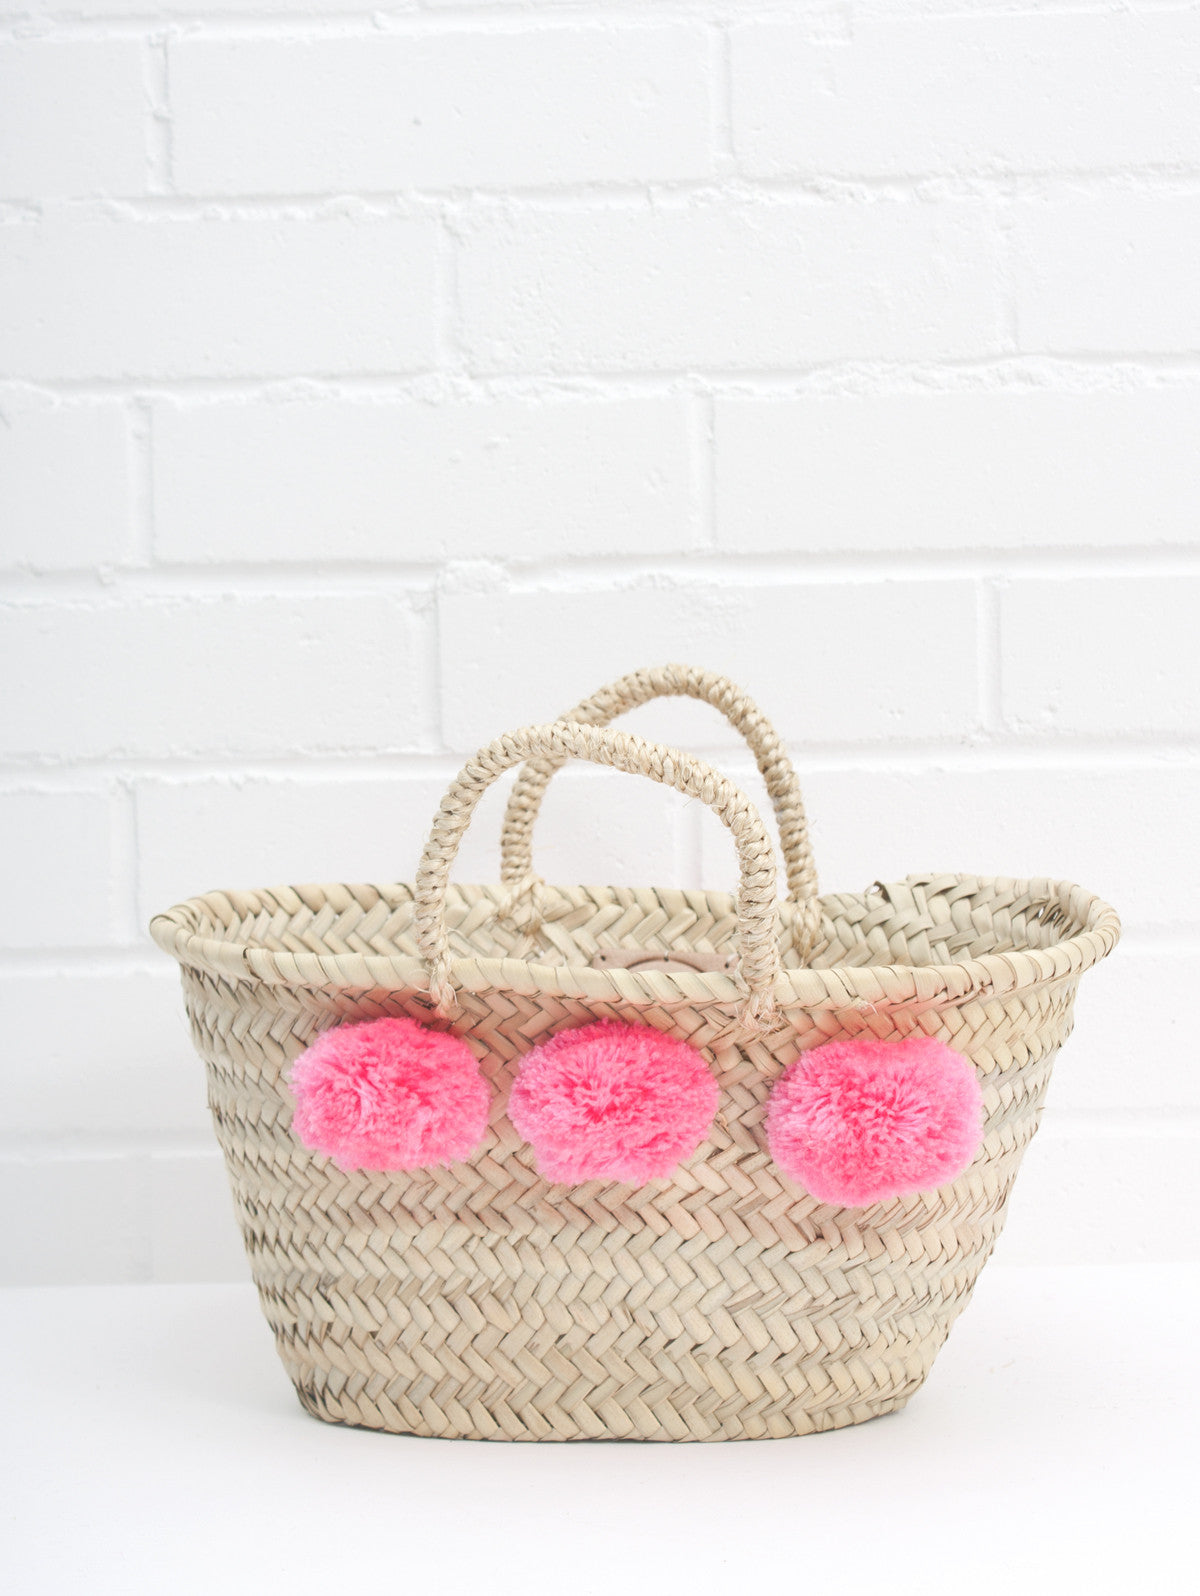 Mini Market Pom Pom Baskets